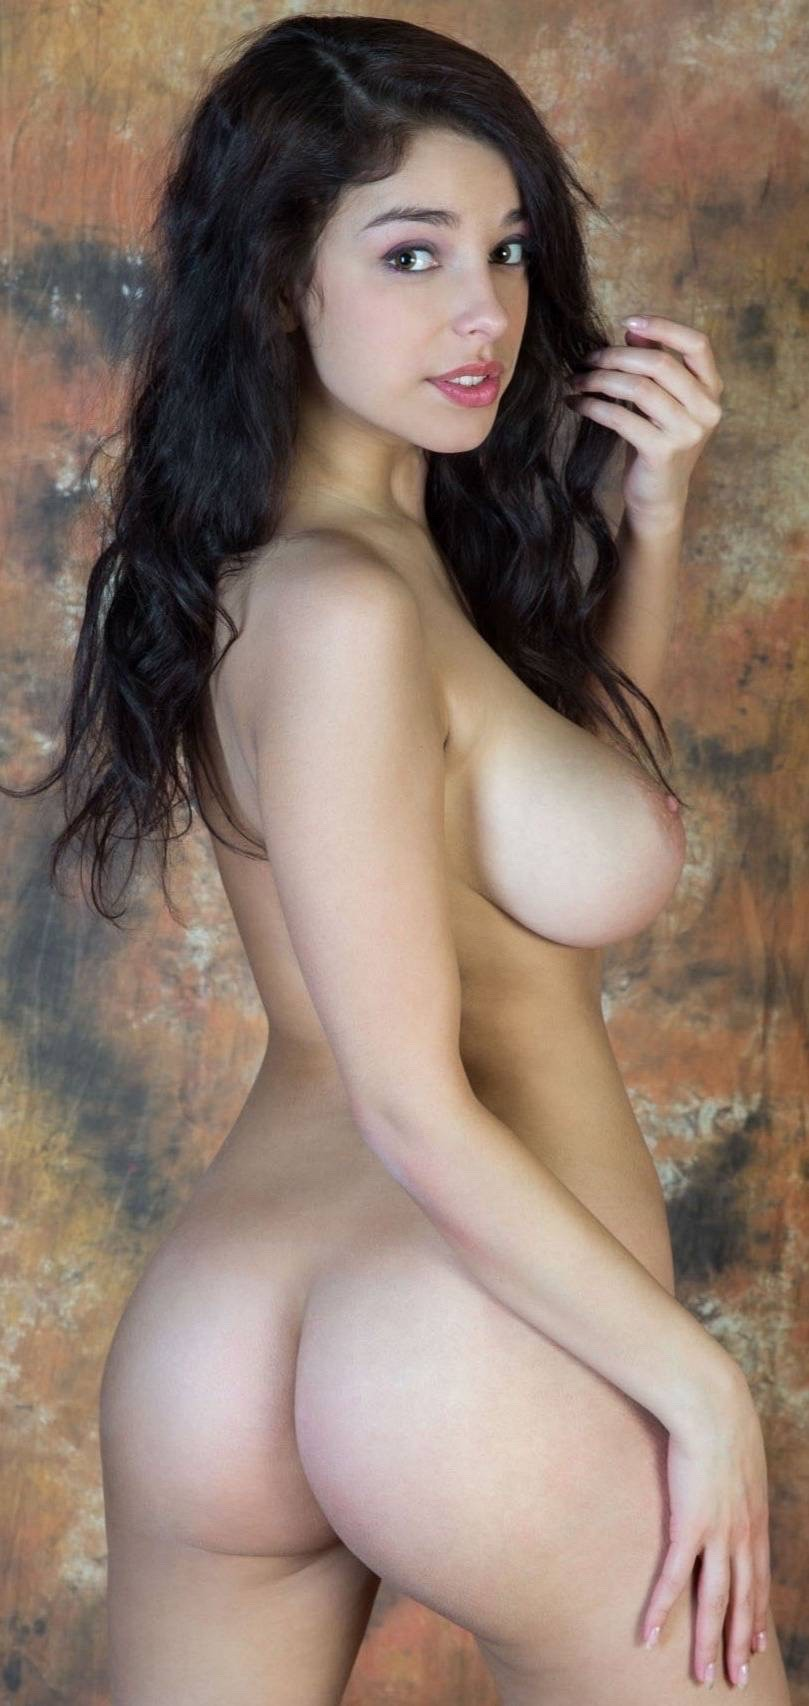 #Voluptuous #Busty #Glamour-  Post in topic Just Voluptuous by JBT Feminine